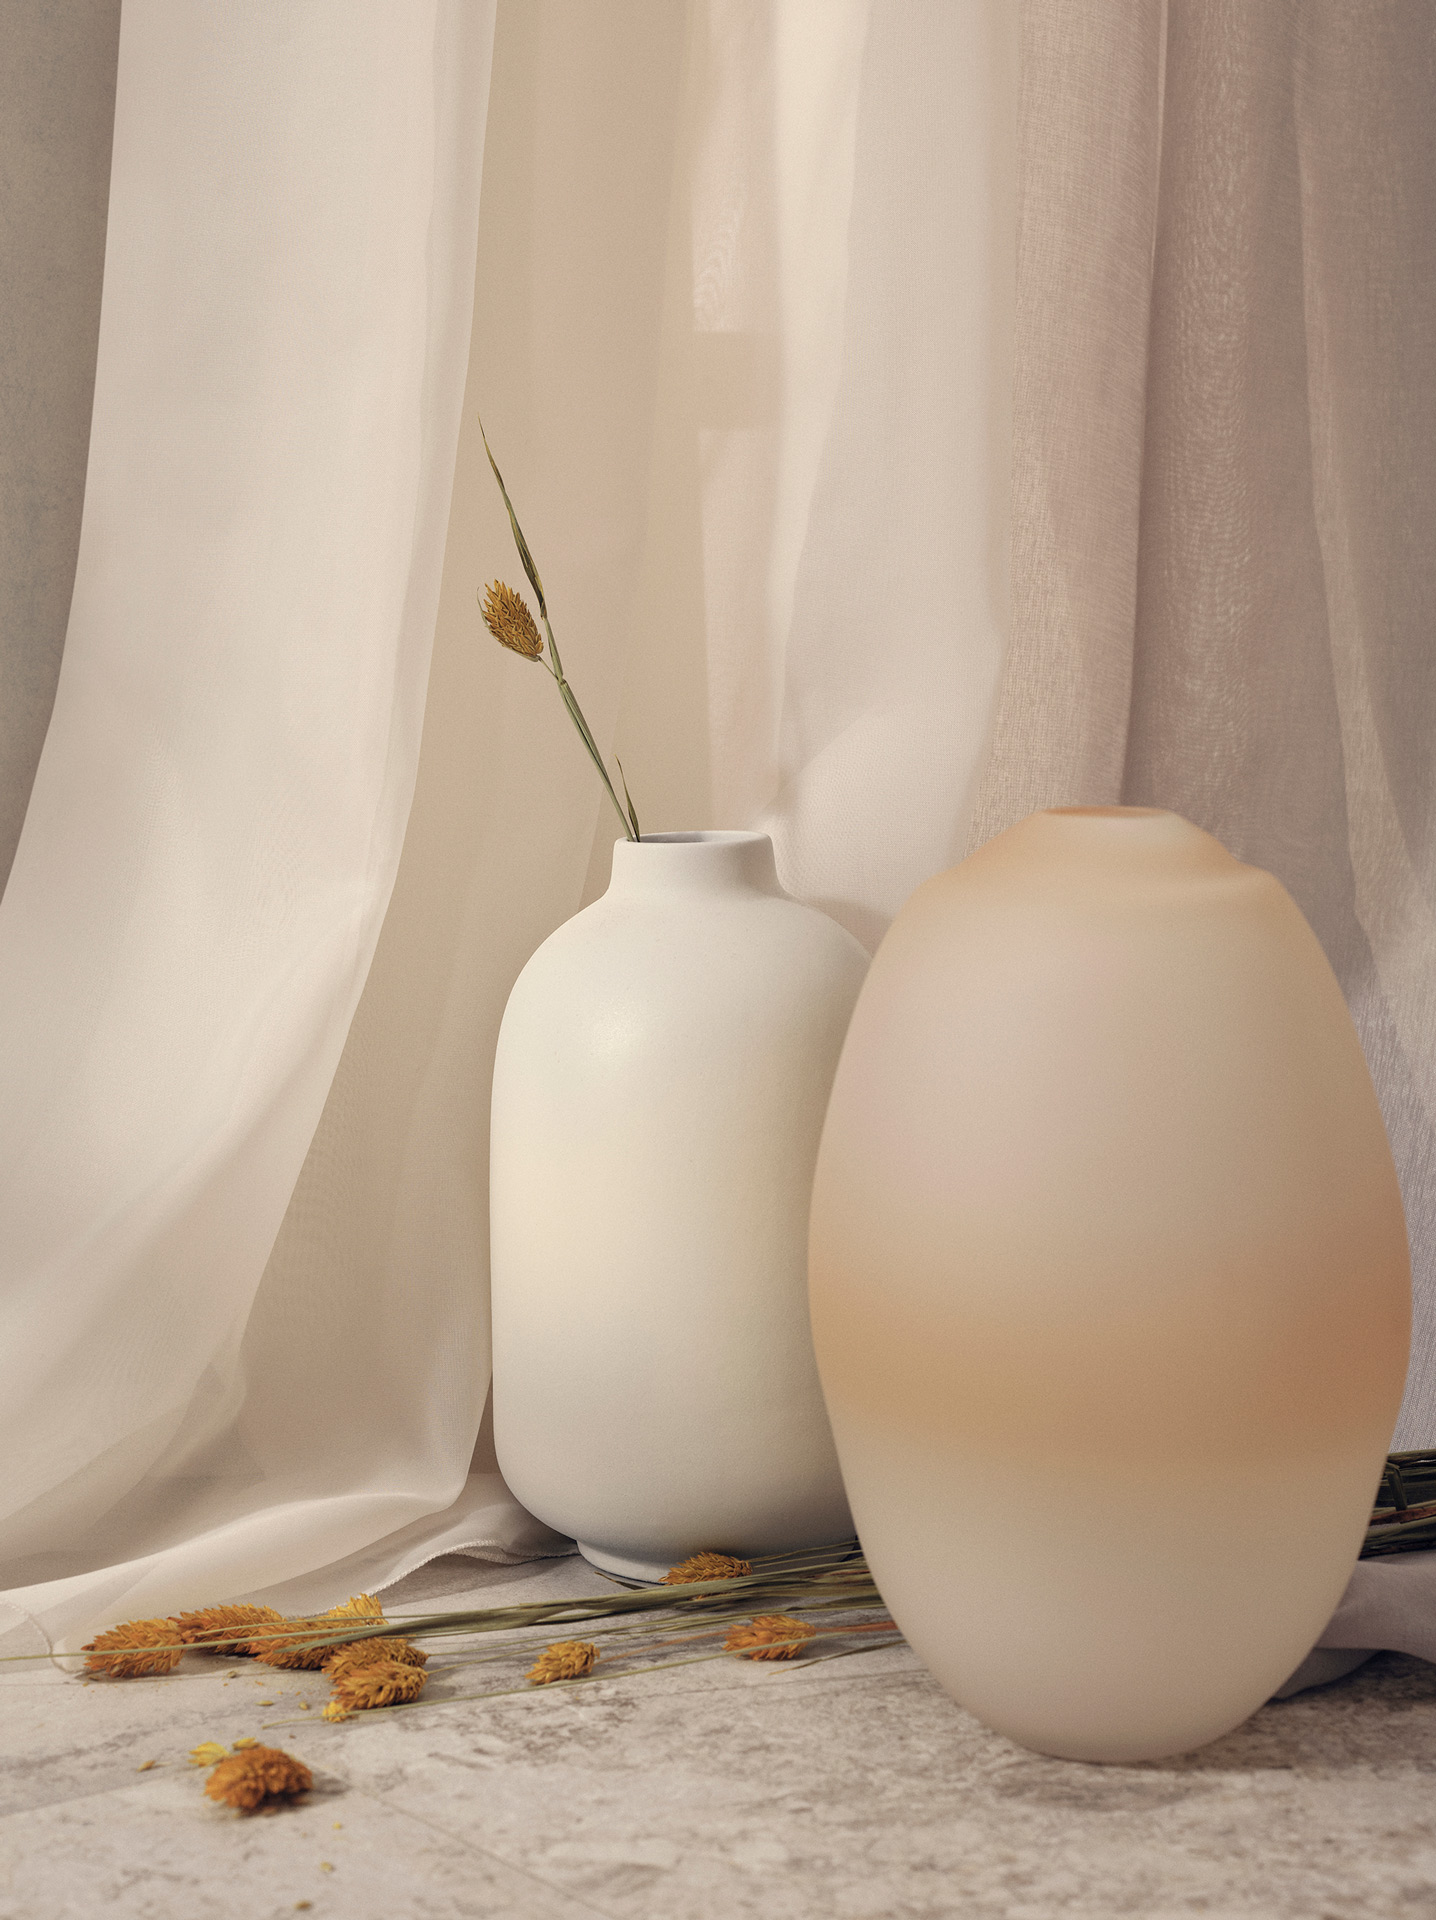 two white vases with single branches inside them against white curtains